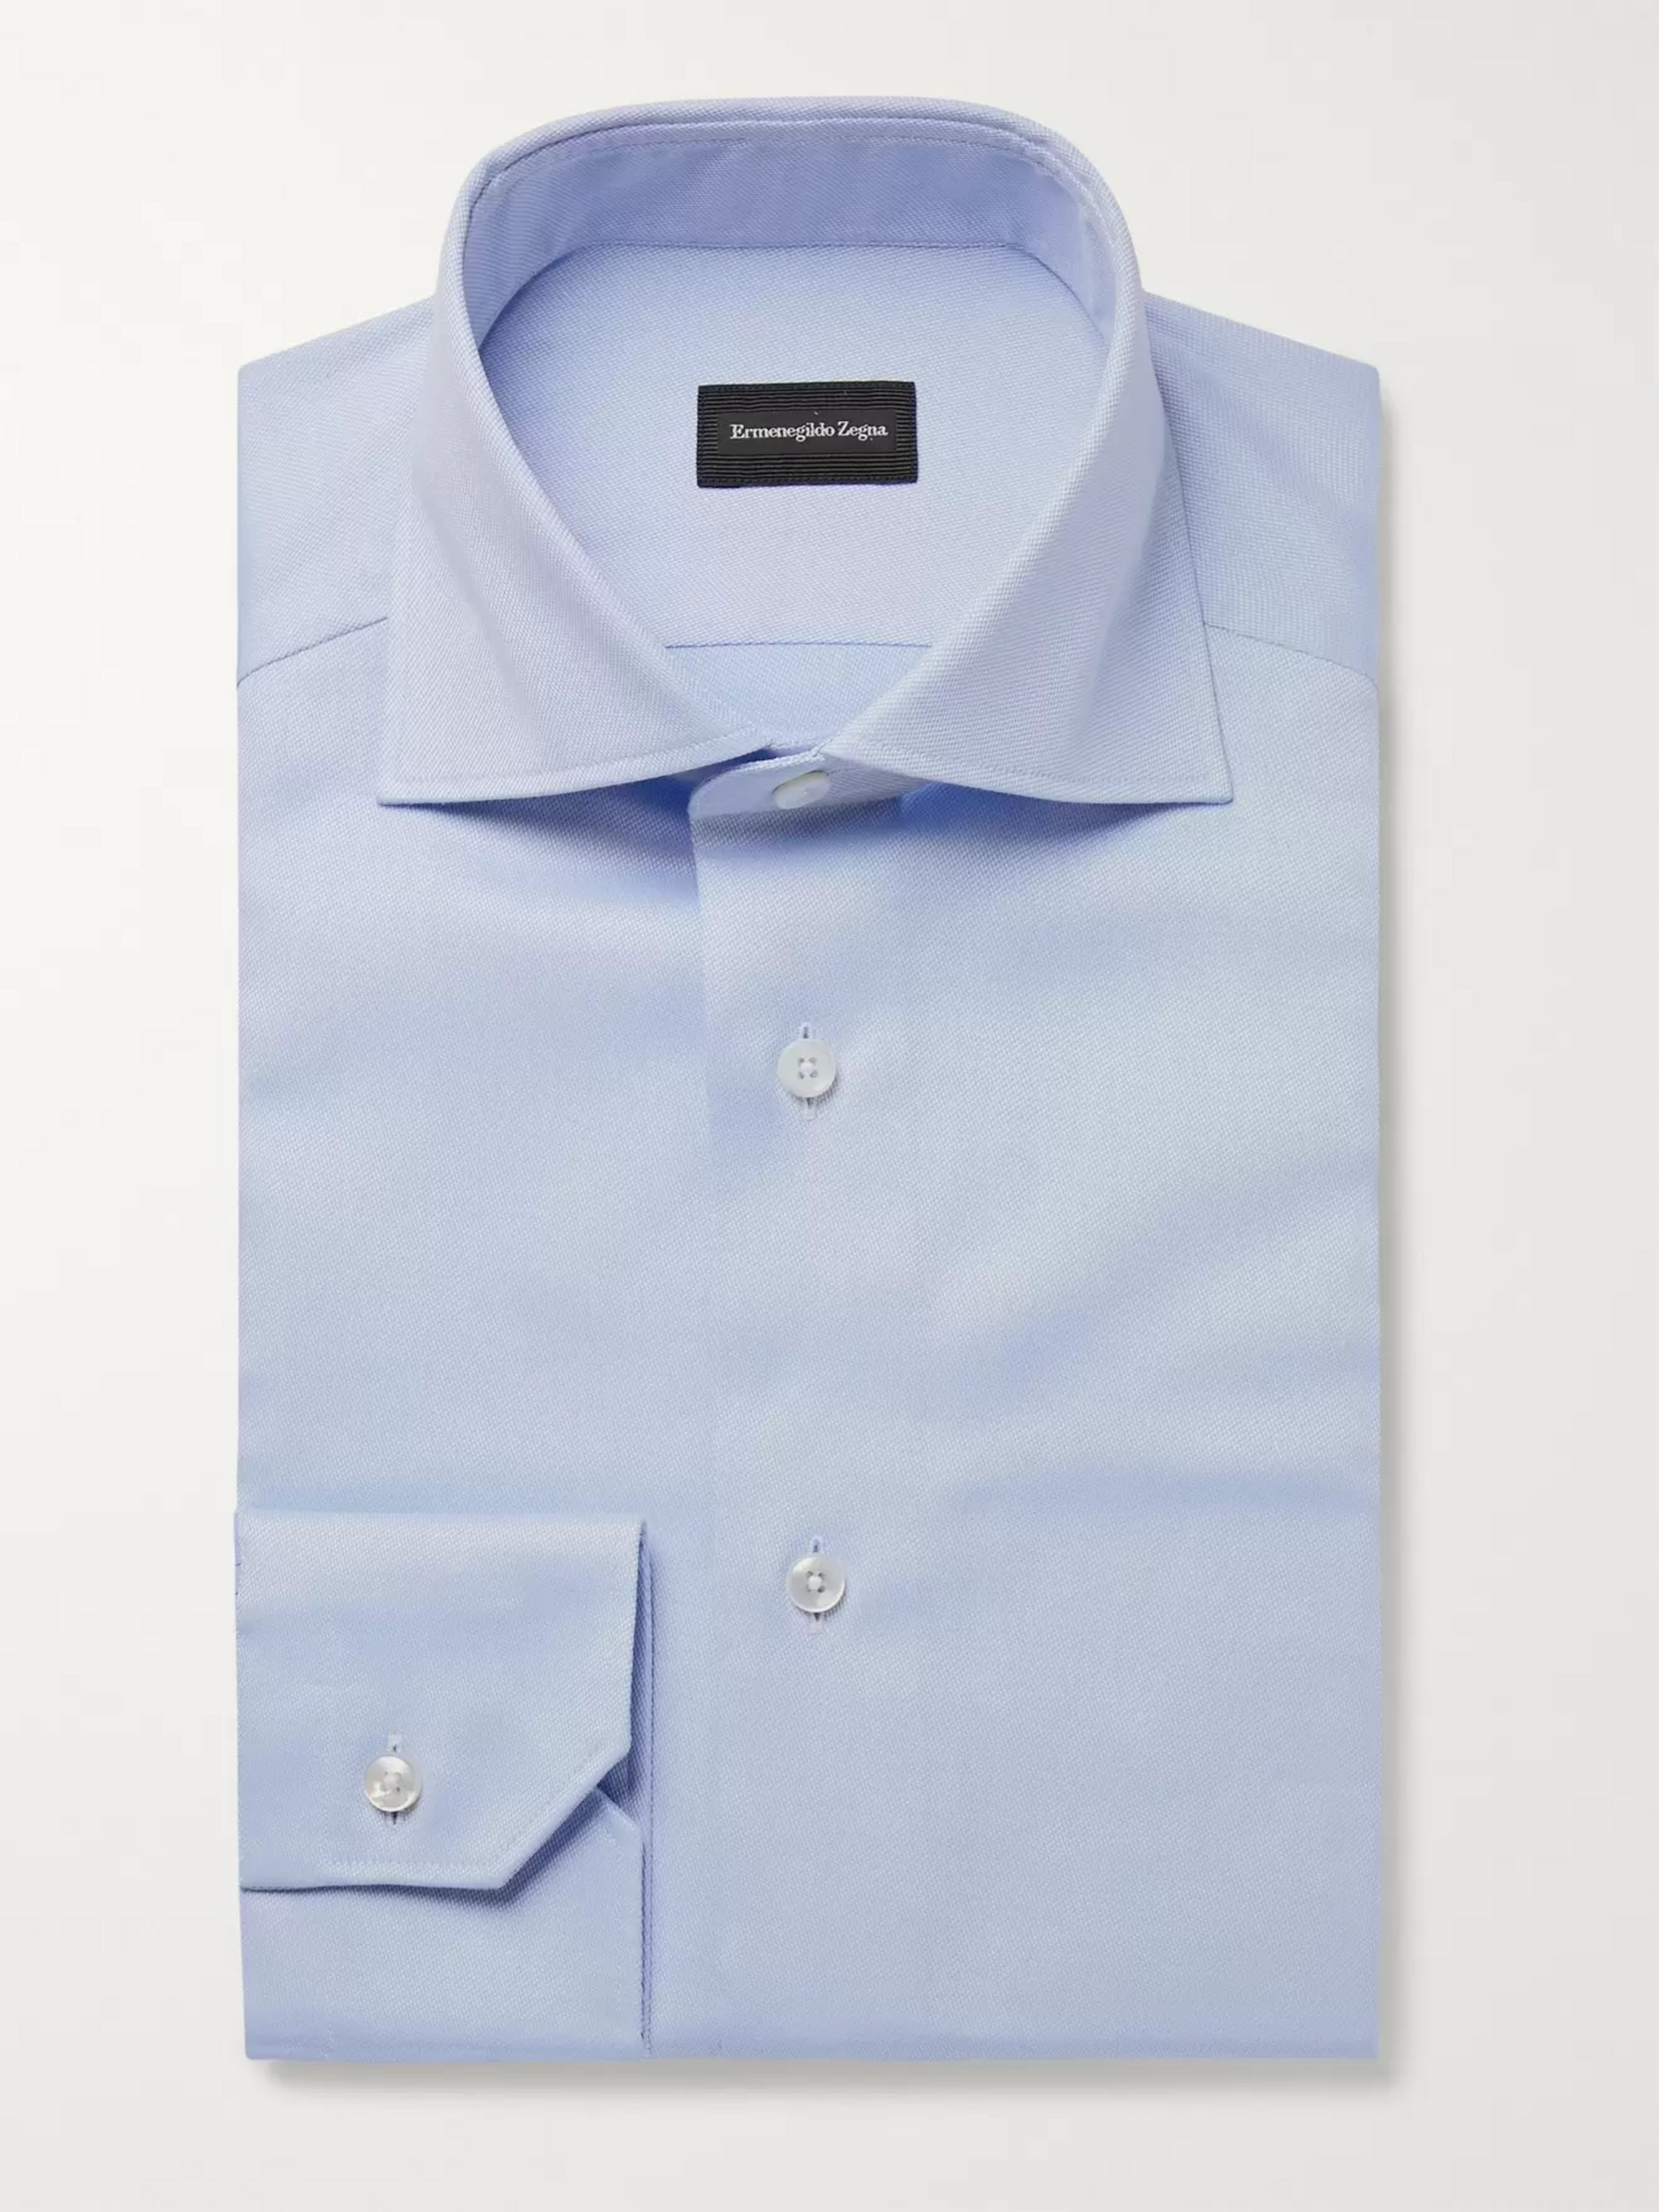 Ermenegildo Zegna Light-Blue Slim-Fit Cutaway-Collar Cotton Oxford Shirt